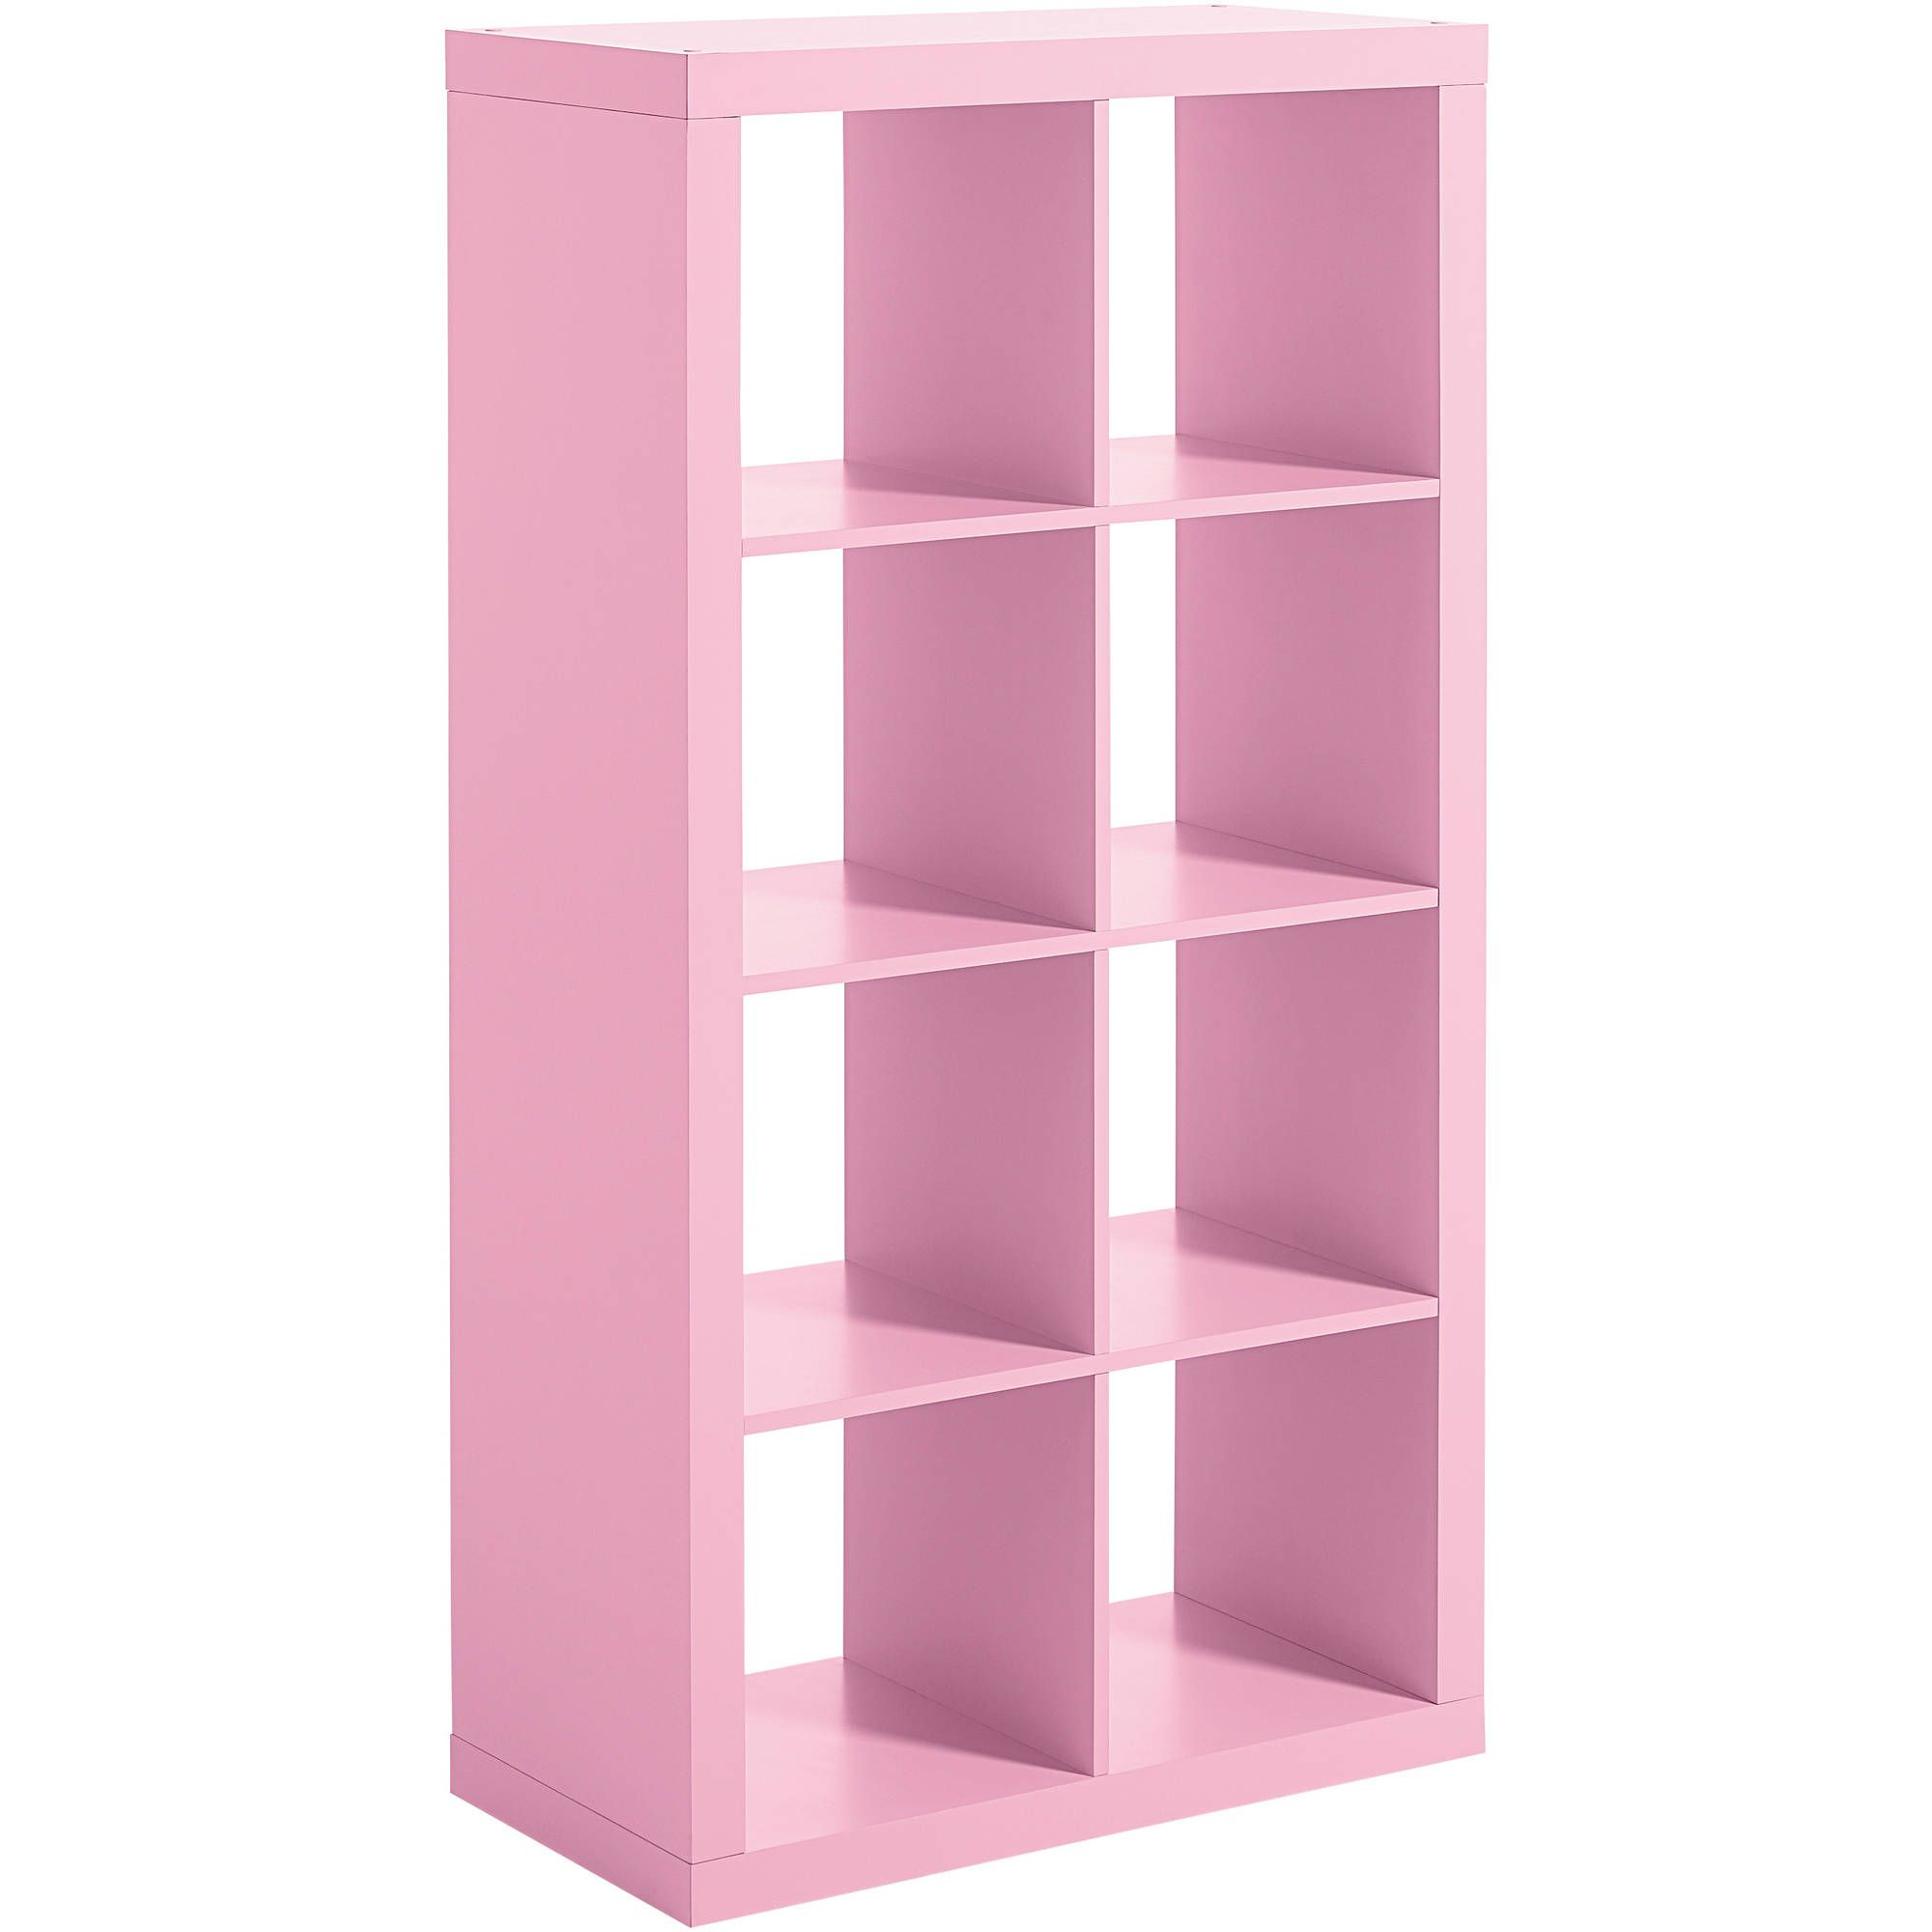 Free 2 Day Shipping Buy Better Homes Gardens 8 Cube Storage Organizer Multiple Colors At Walmart Com With Images Cube Storage Cube Organizer